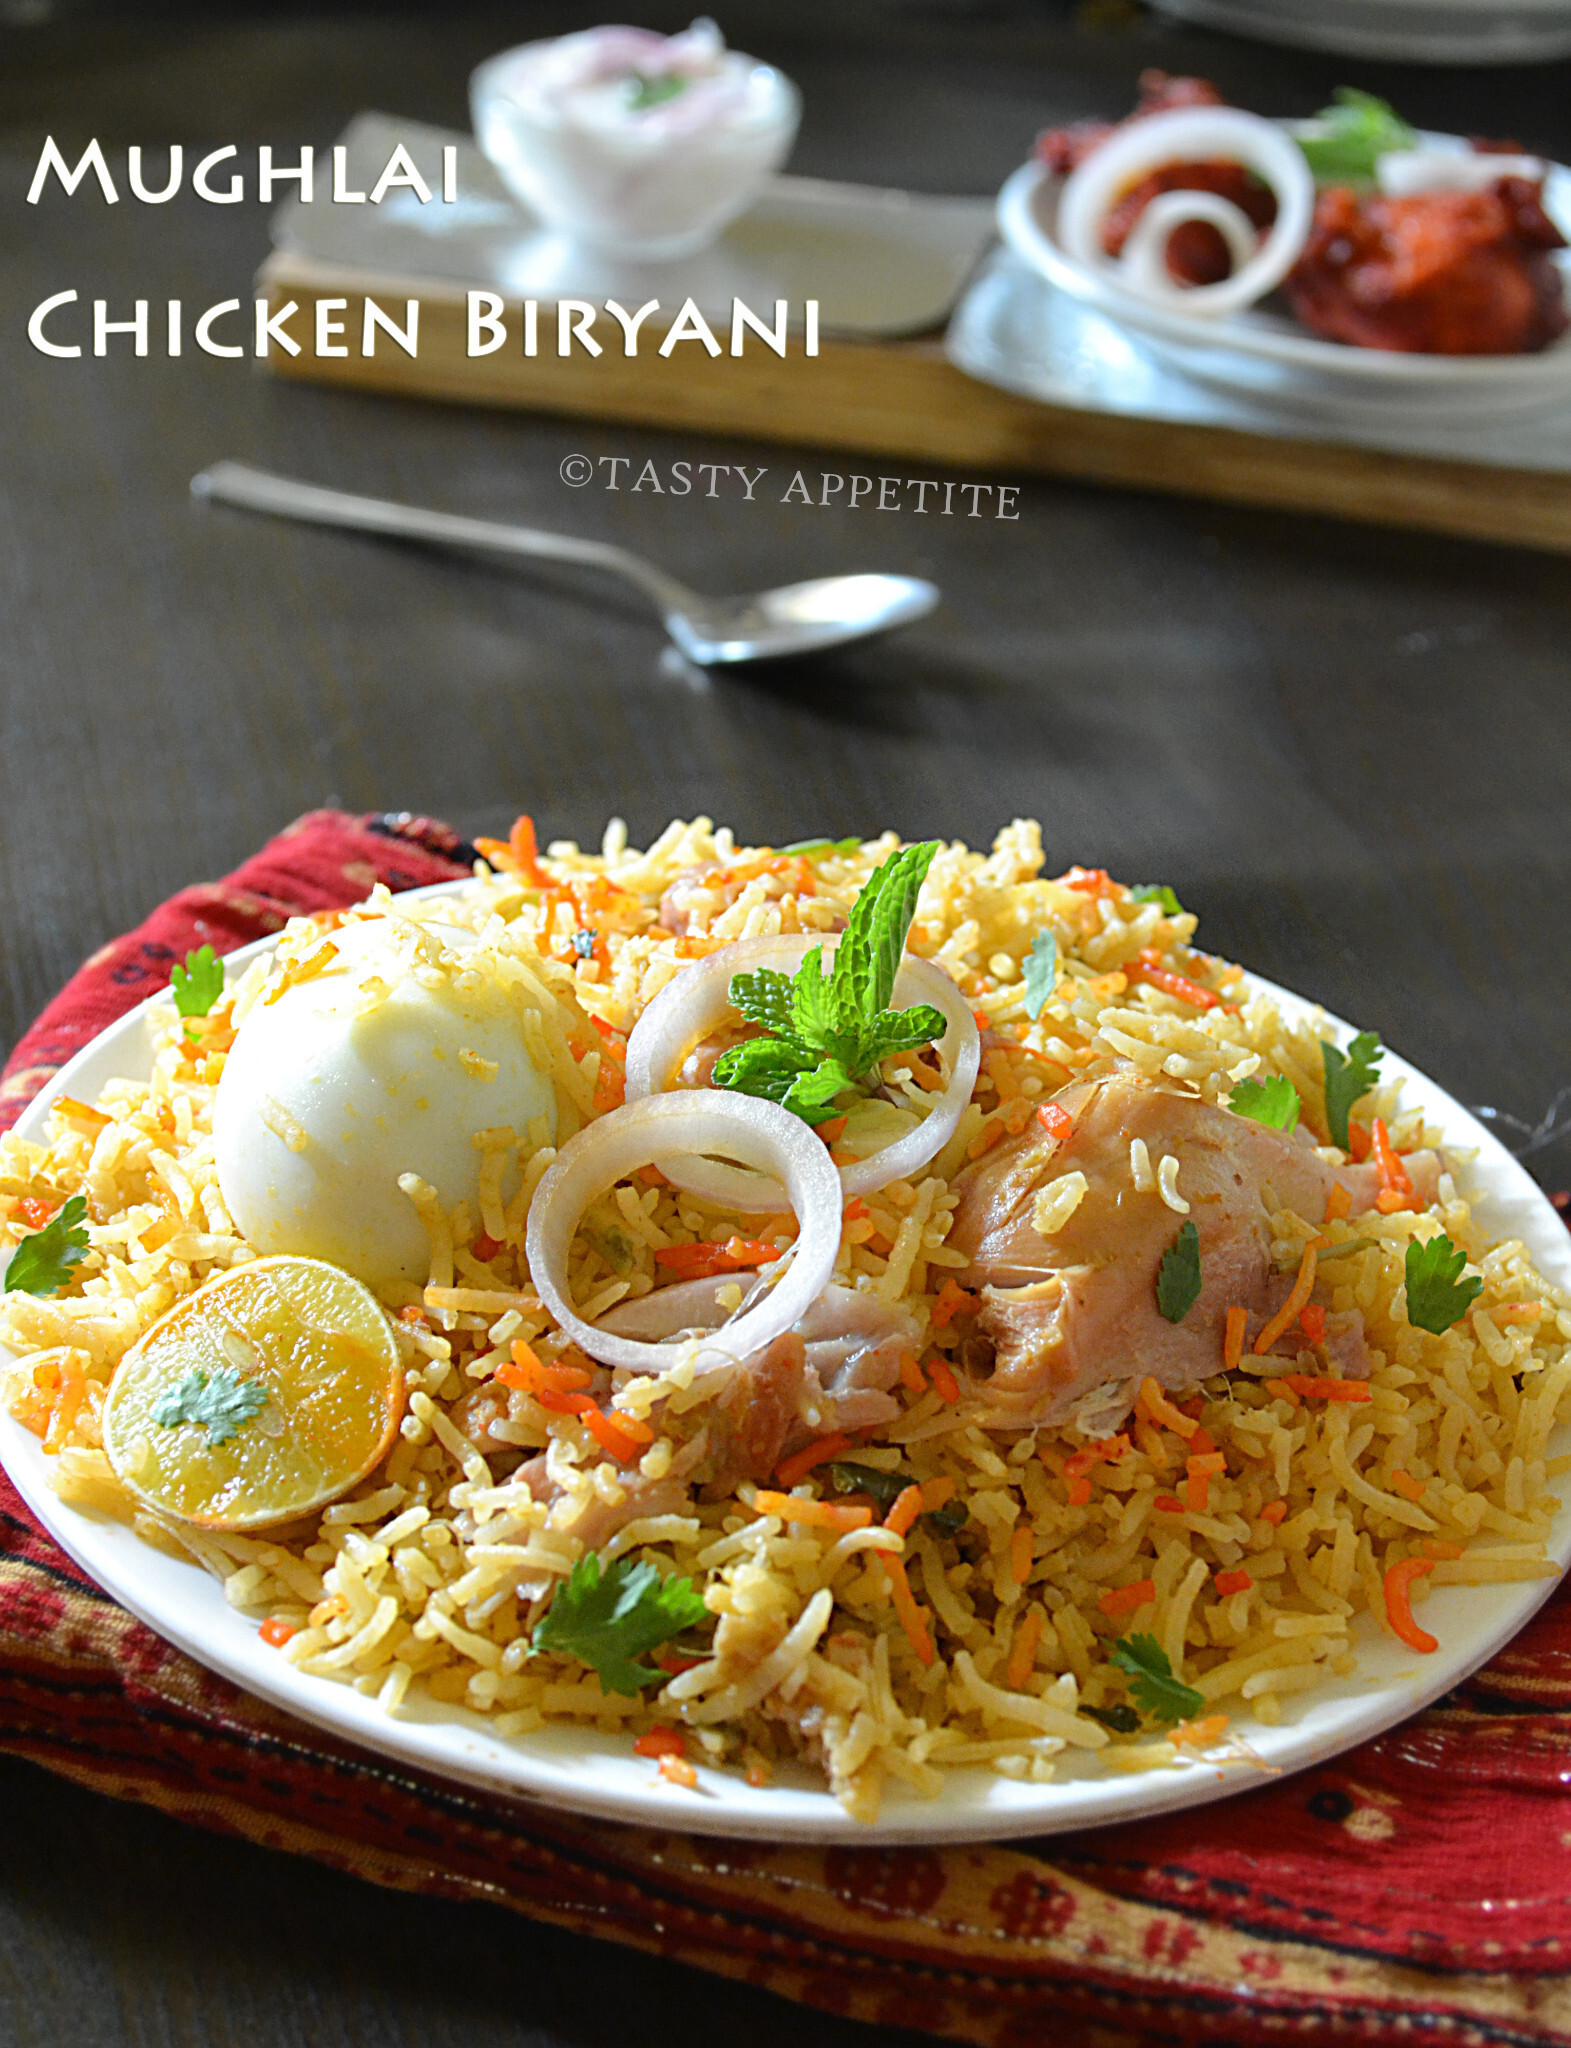 How to make Mughlai Biryani – Mughlai Chicken Biryani /  Spicy Biryani Recipes: